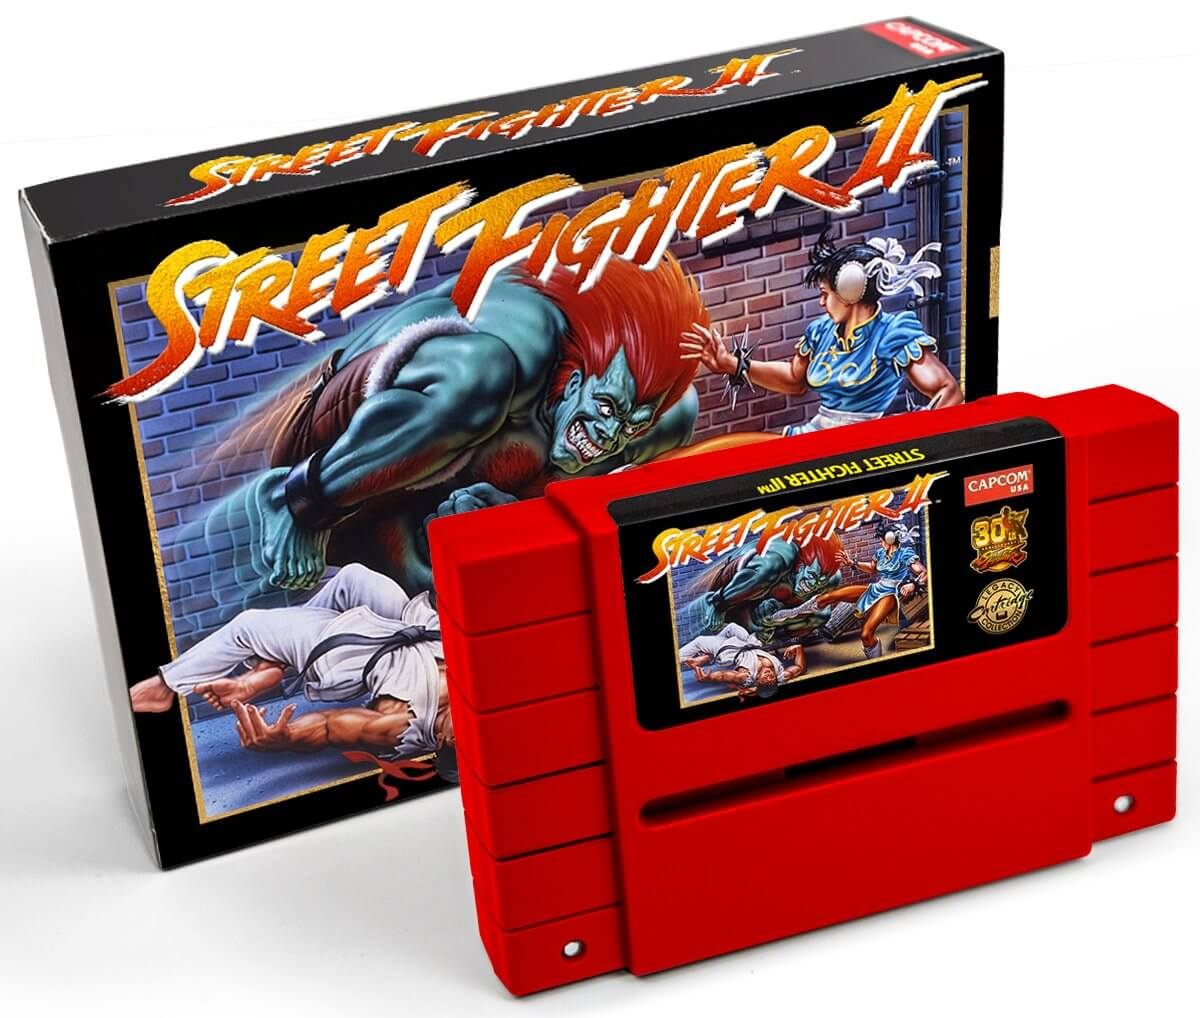 Cartucho Street Fighter II 30 anos